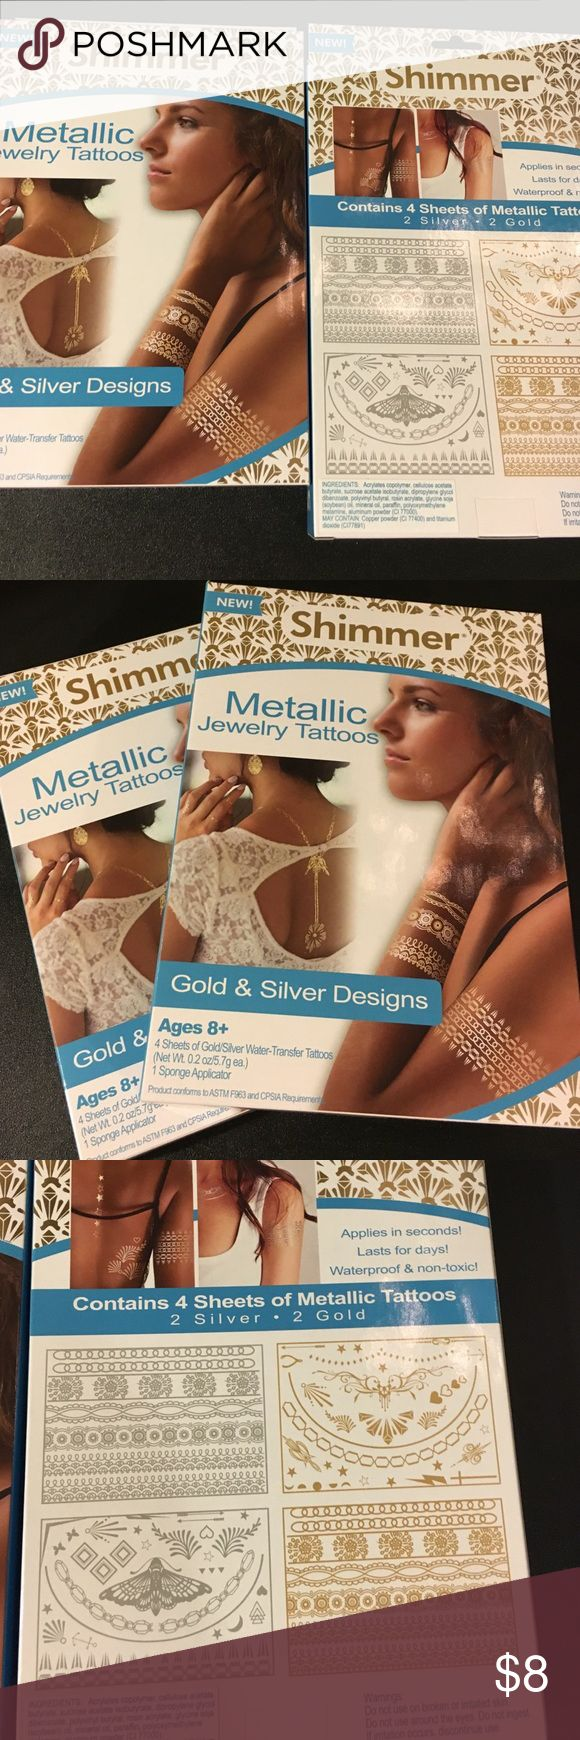 metallic shimmer jewelry tattoos two boxes These are shimmer metallic jewelry tattoos. There are two boxes. Four sheets gold and silver water transfer tattoos with sponge applicator. Each box contains four sheets two silver two gold and there are two boxes. Jewelry